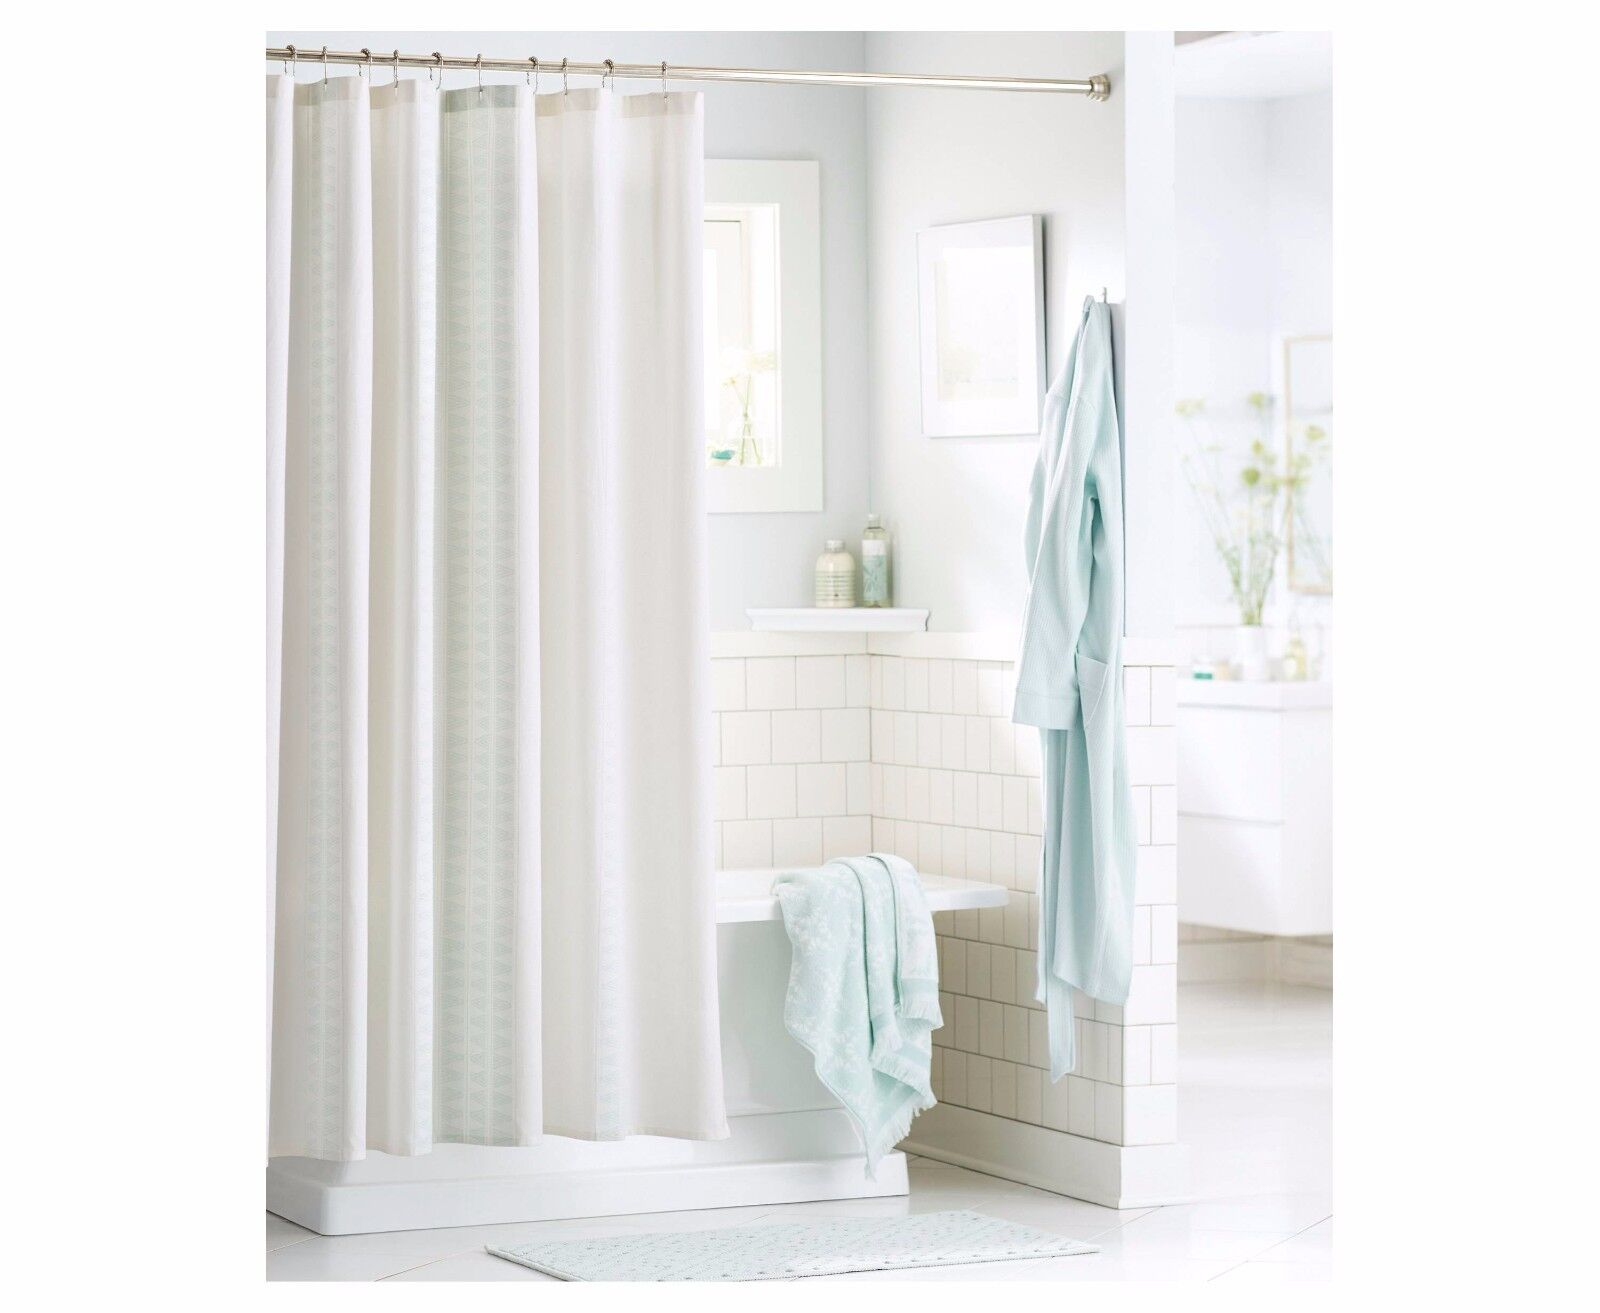 Details About Threshold Shower Curtain Green Diamond Stripe 72 In X 72 In New